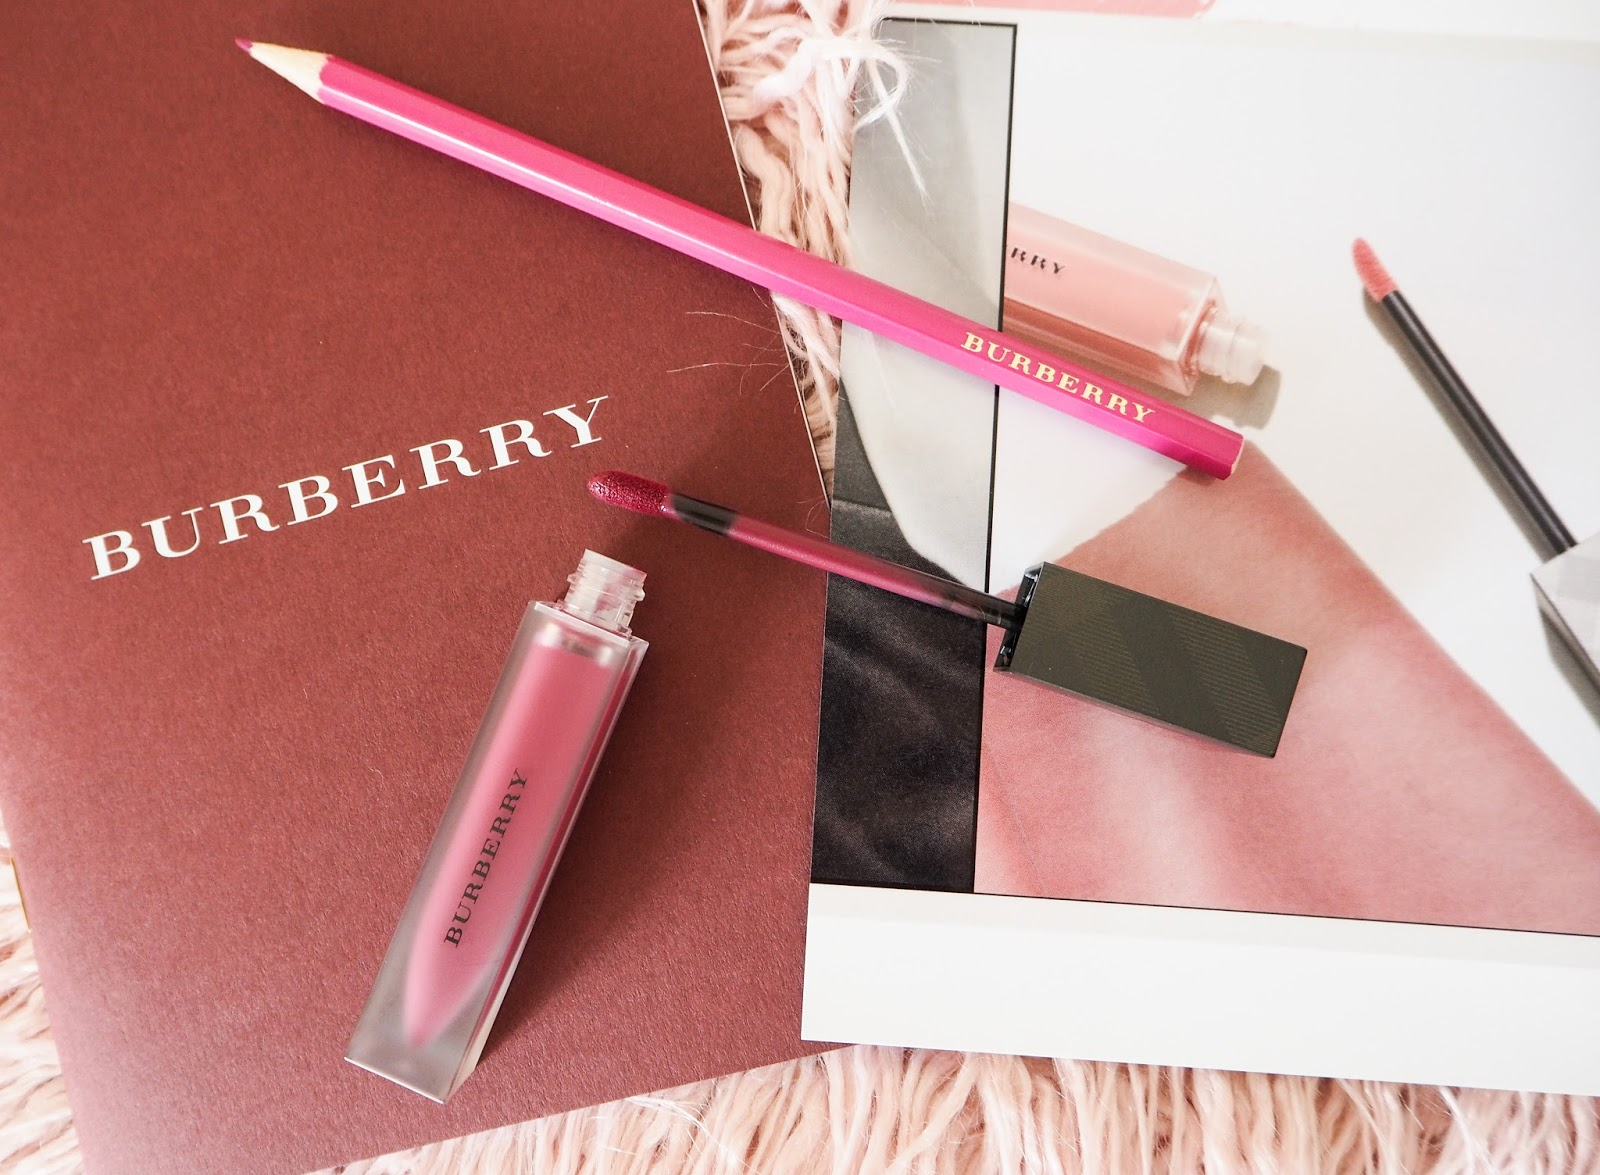 Burberry Lip Velvet Liquid Lipstick in Bright Plum